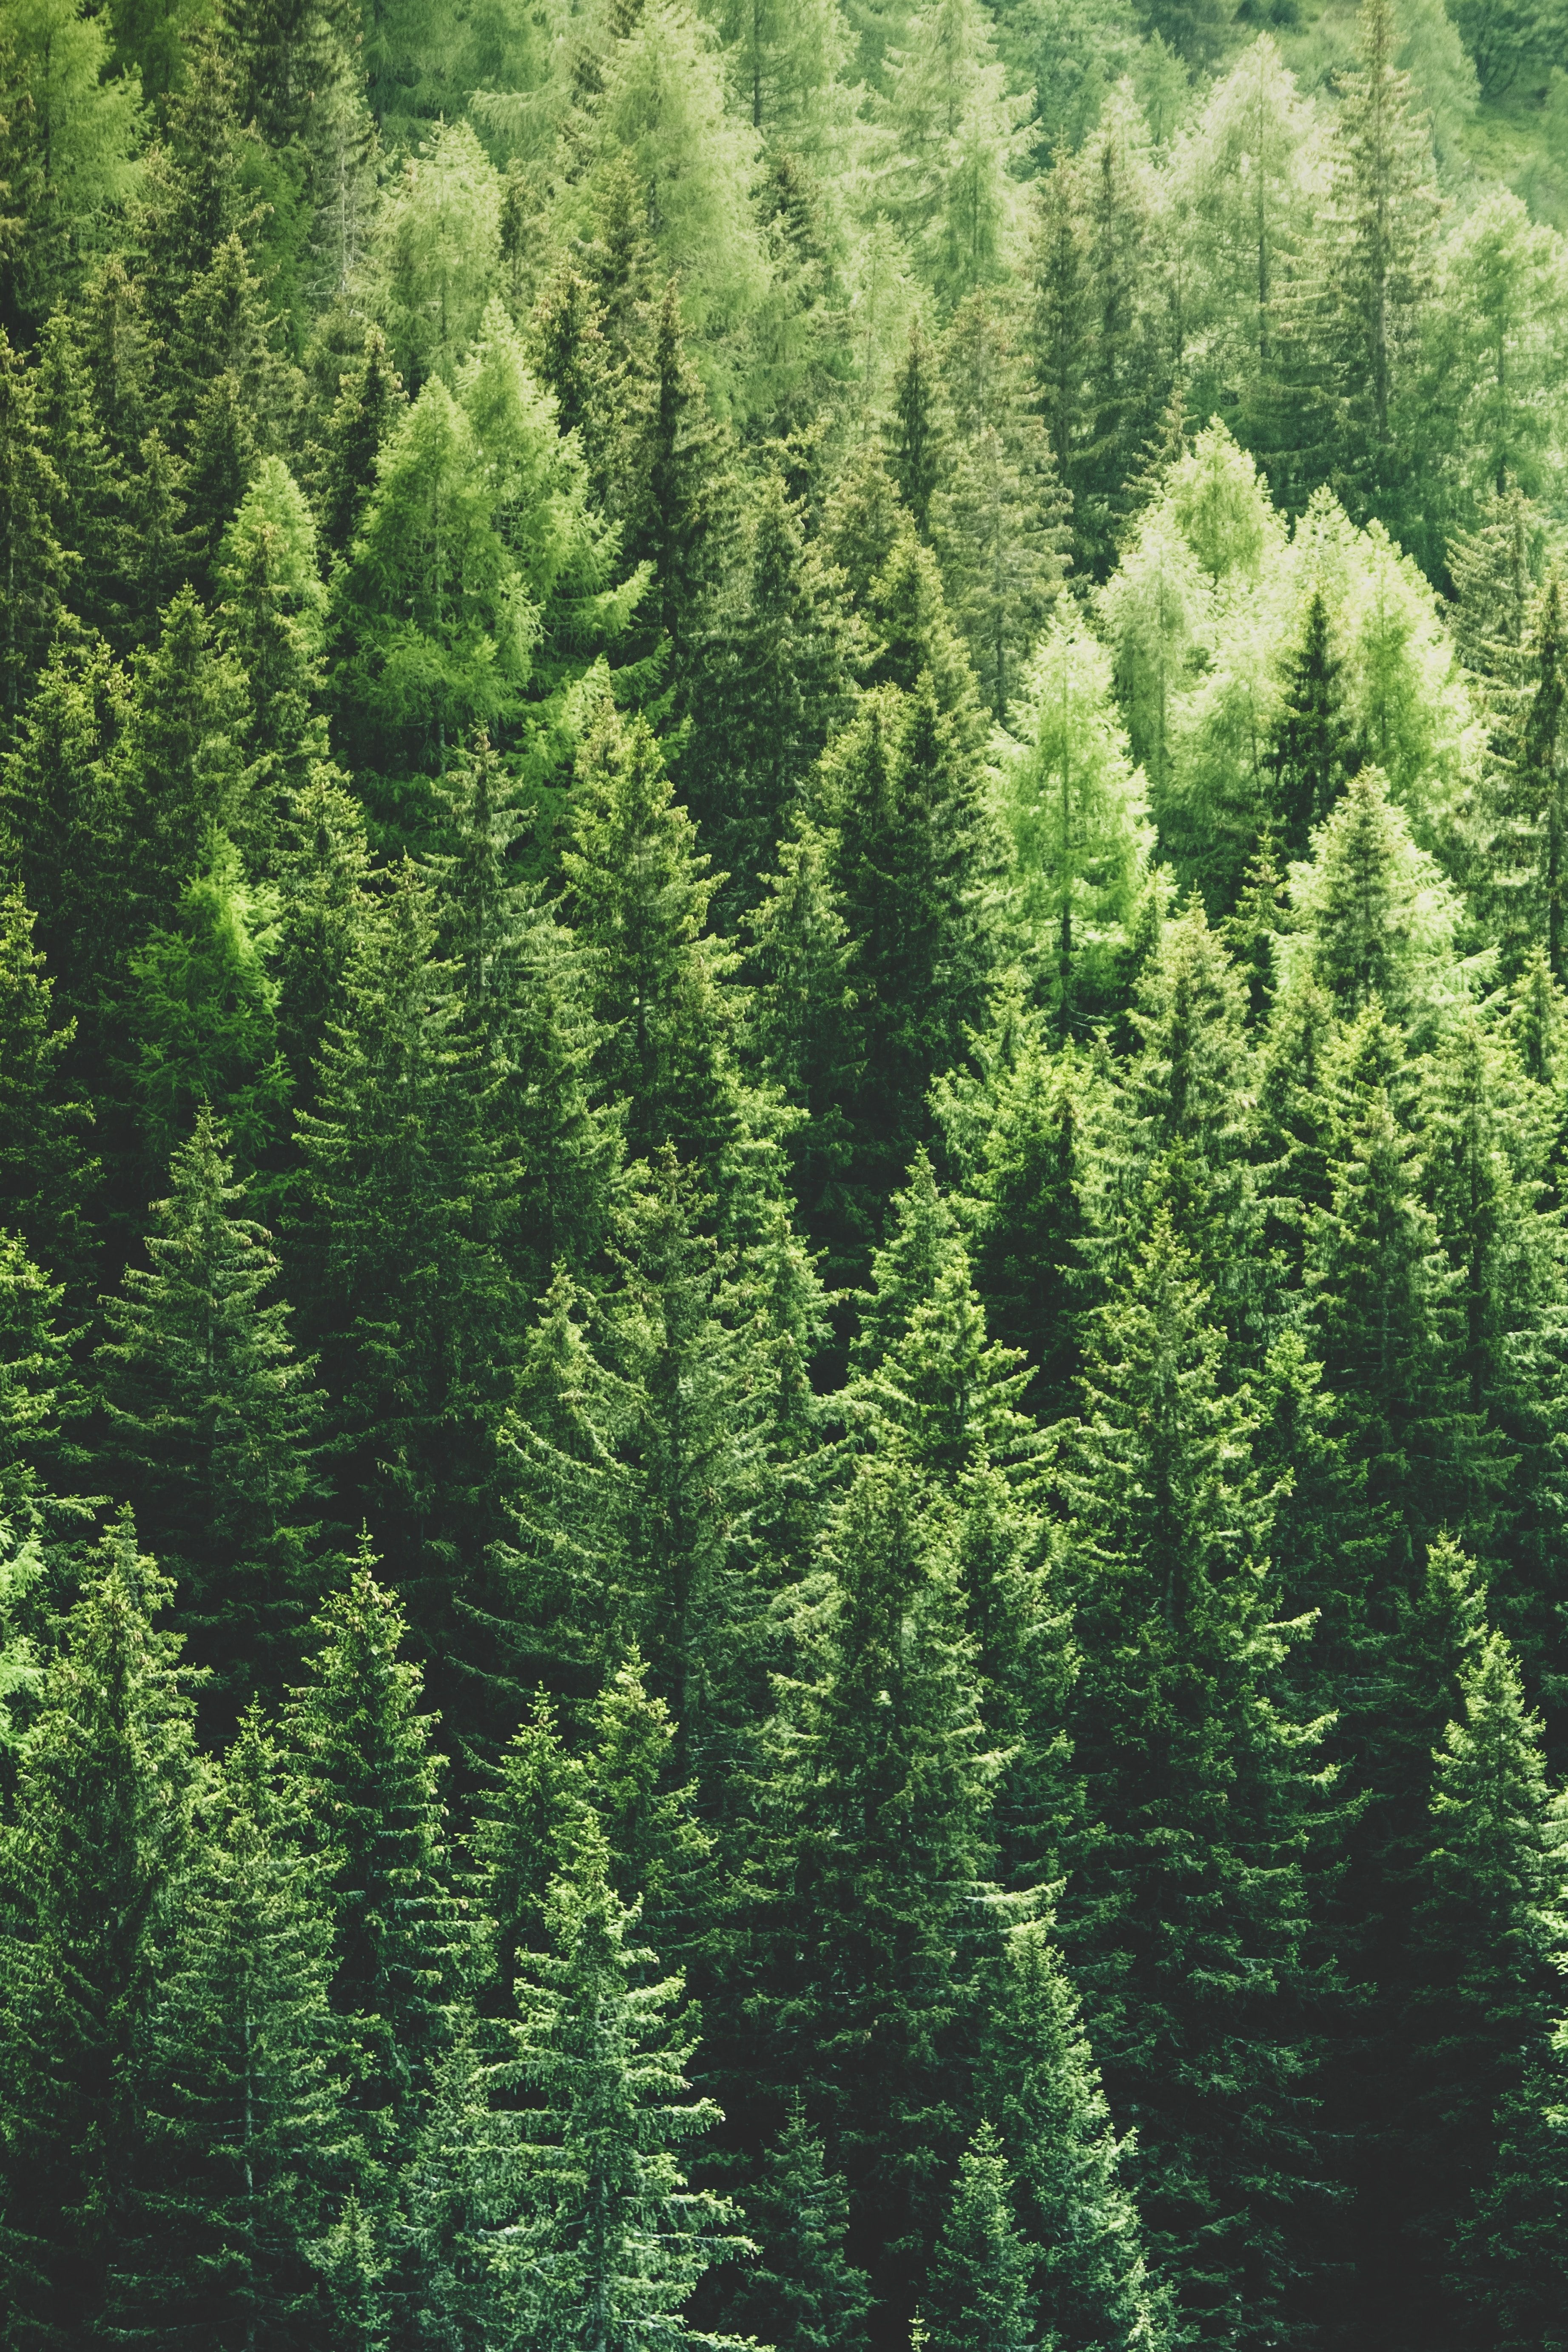 Download 3687x5530 Pine Trees Forest Top View Wallpapers